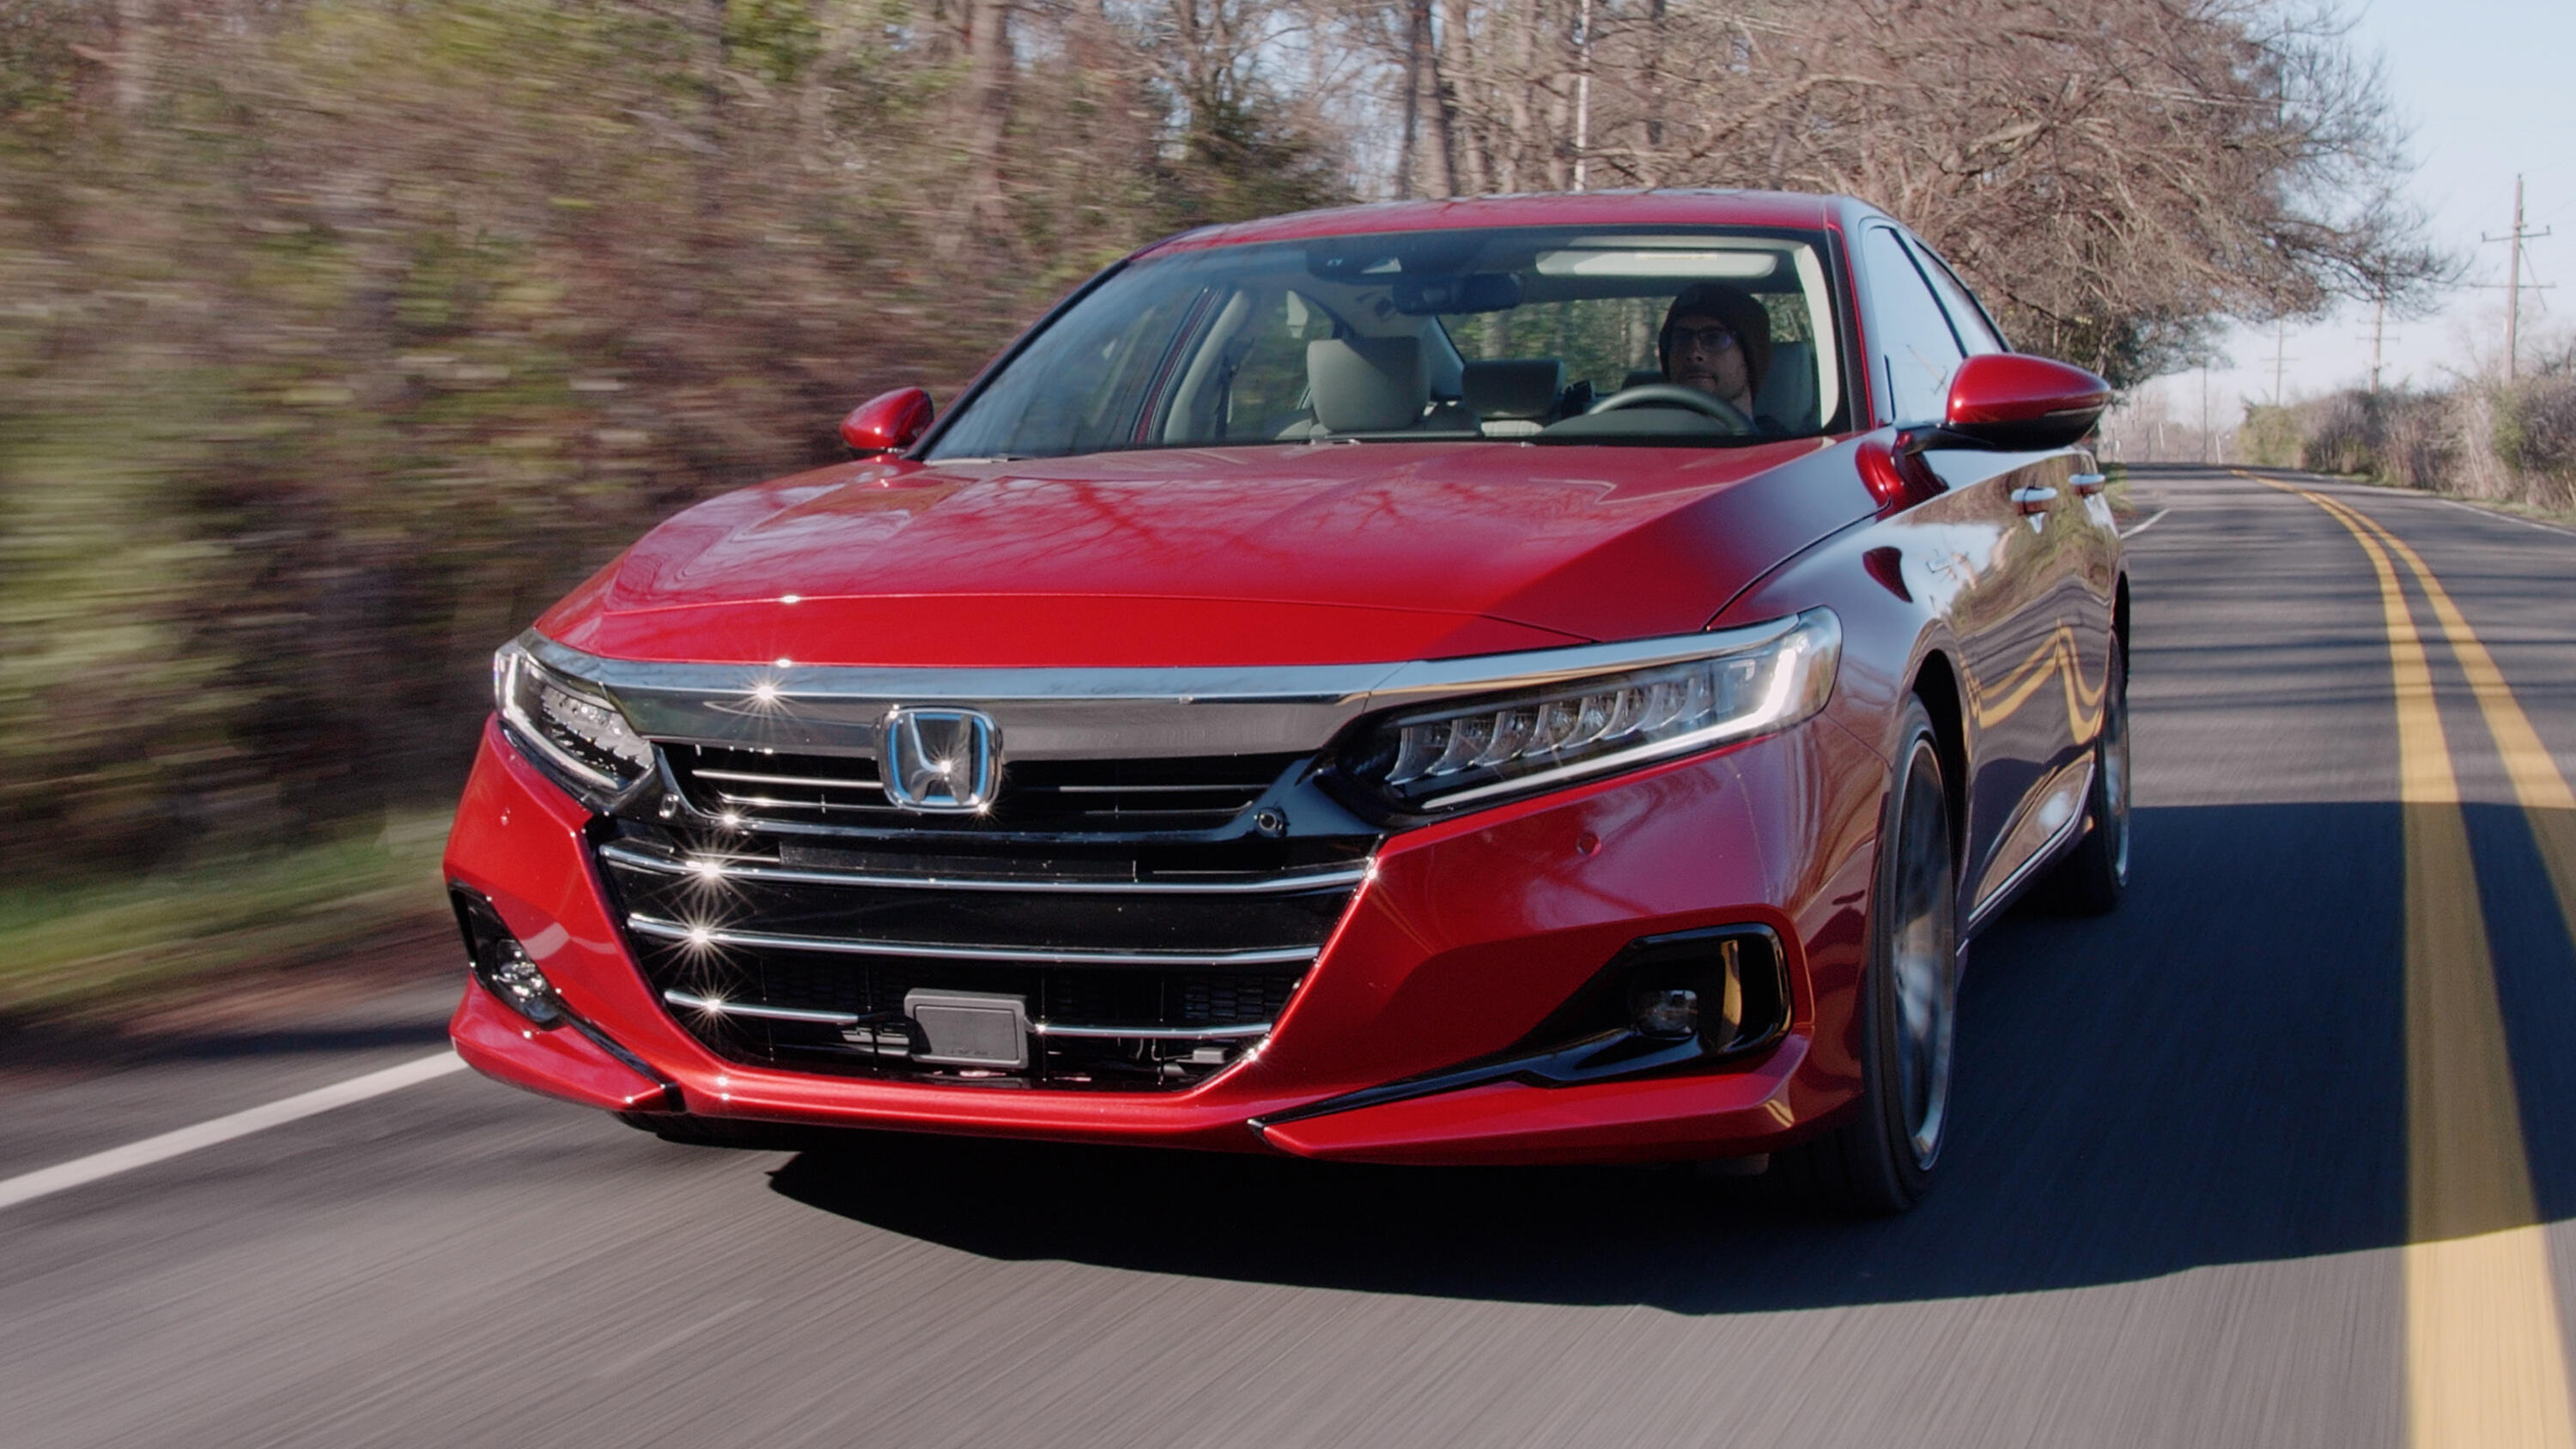 Video: 2021 Honda Accord Hybrid first drive: Smooth without overdoing it